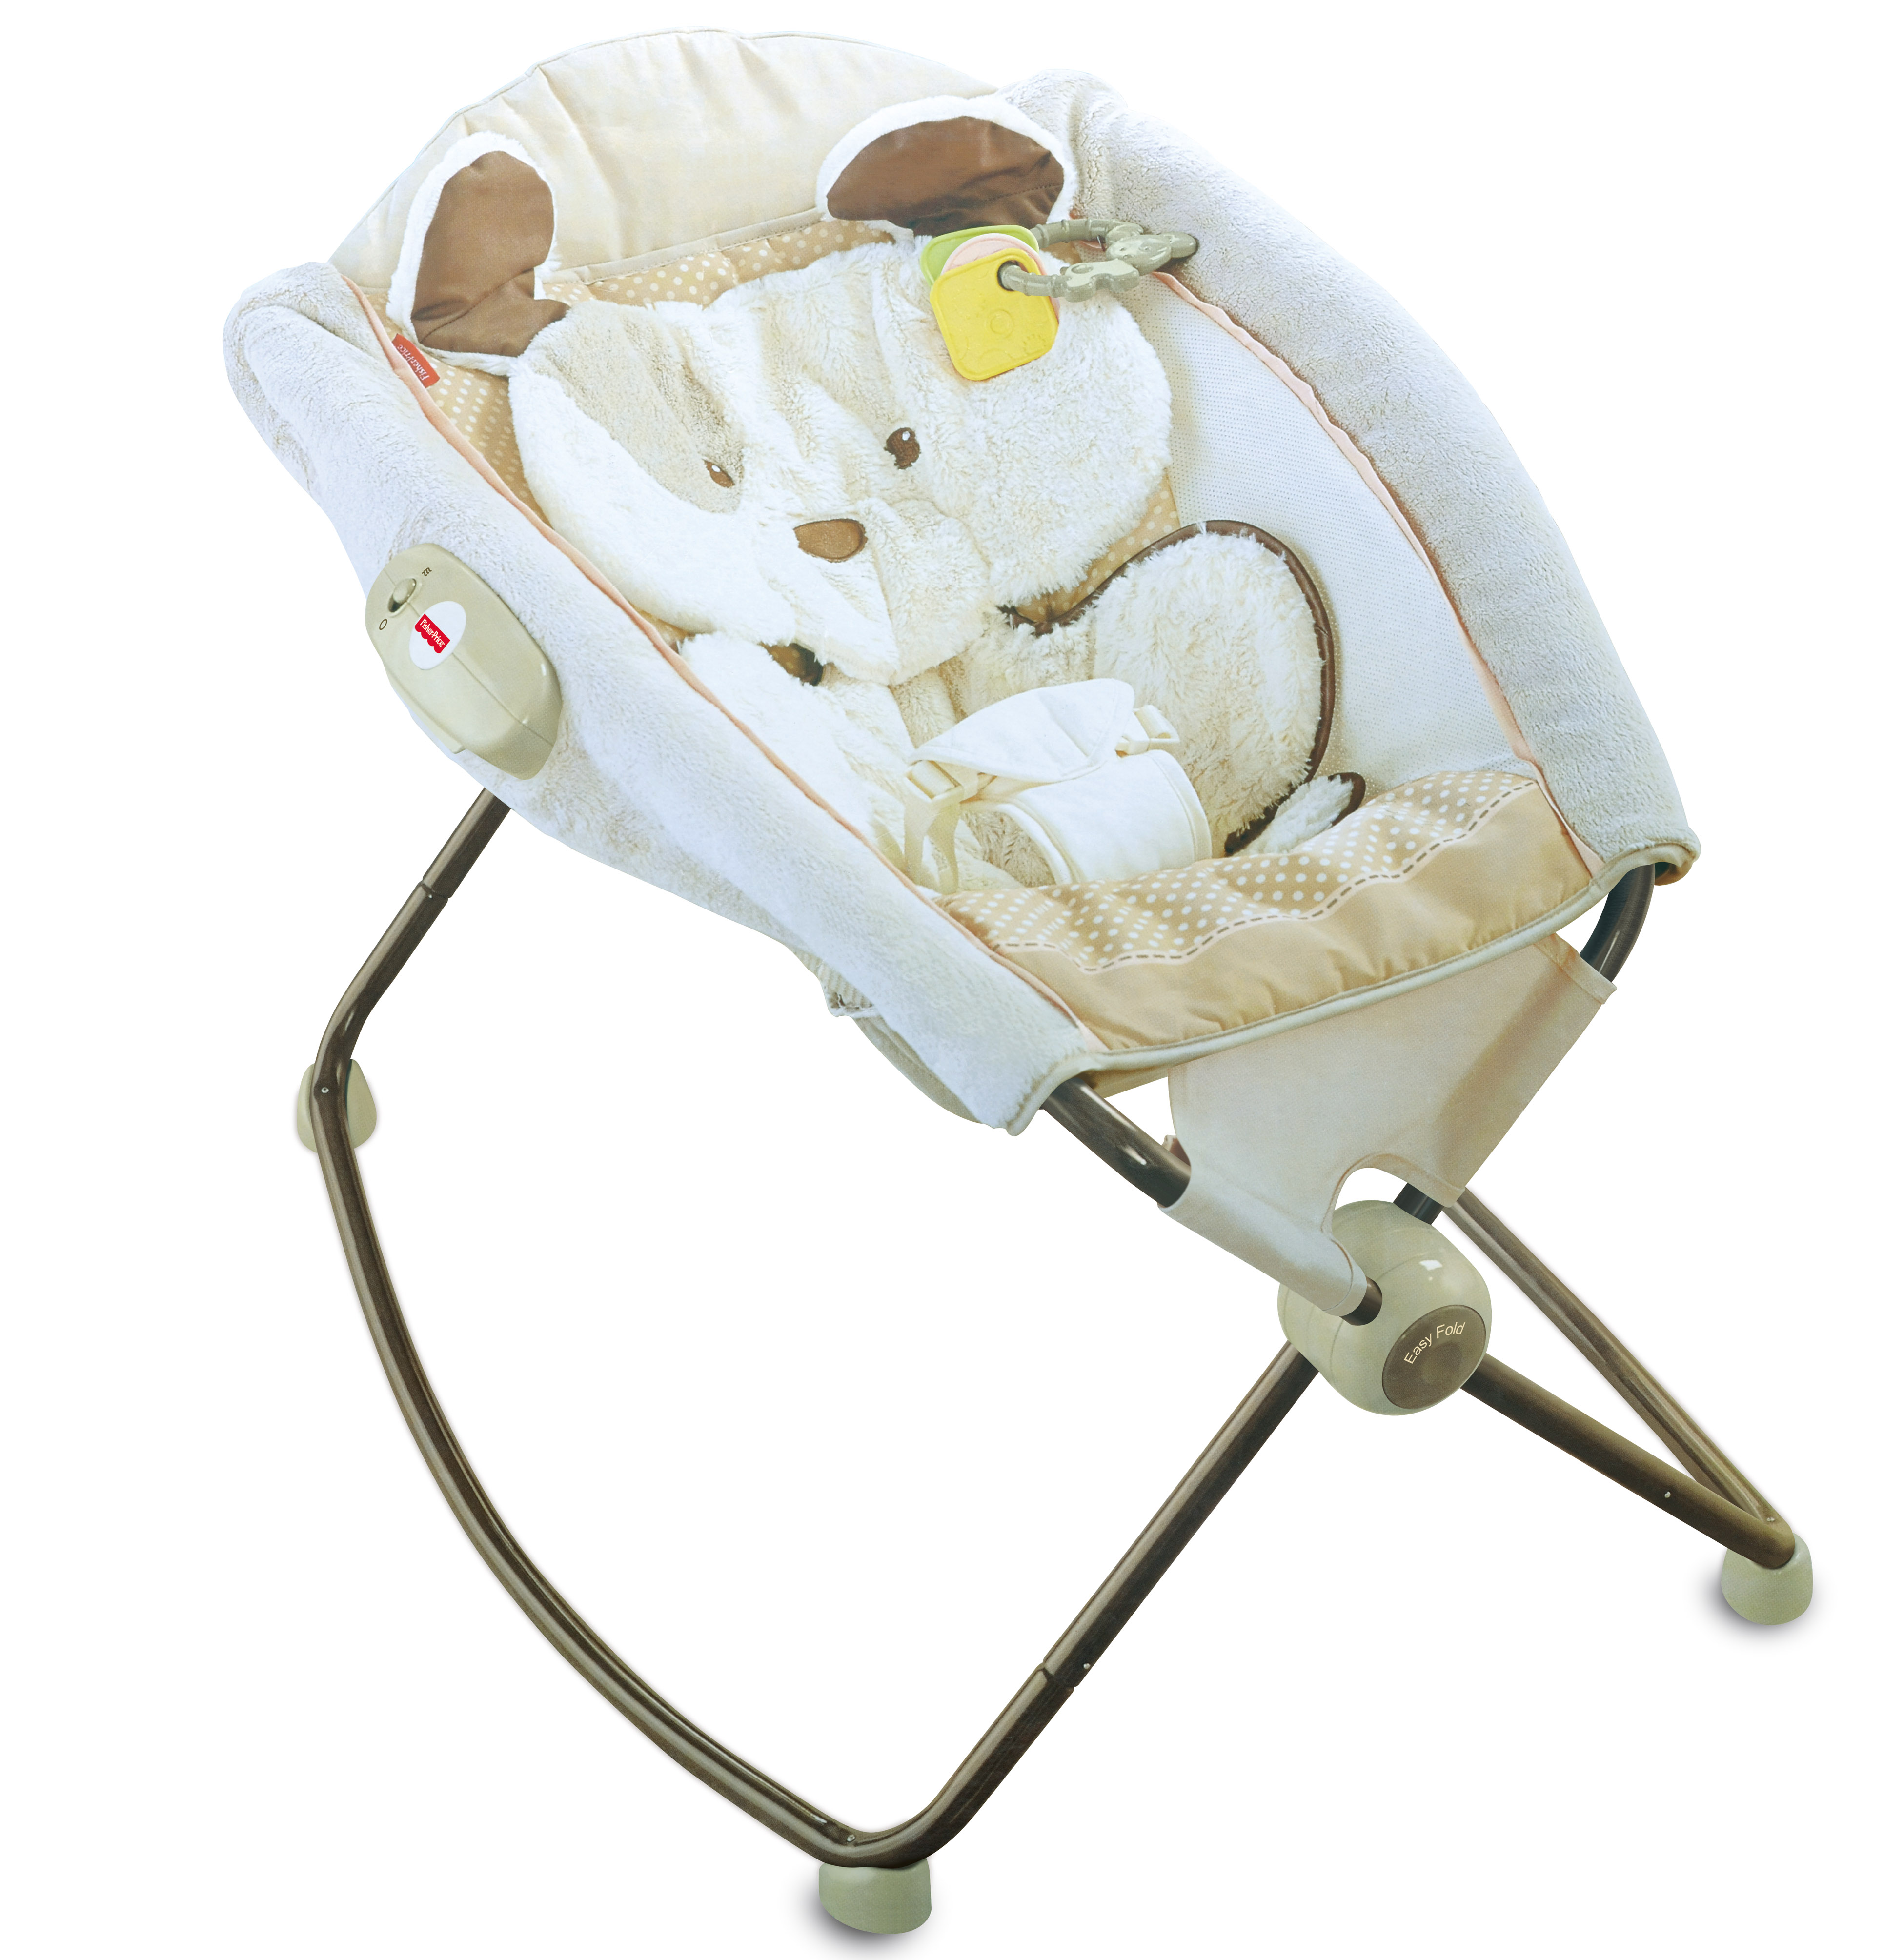 swing chair baby age elegant french accent chairs super soft infant rocking vibration cradle